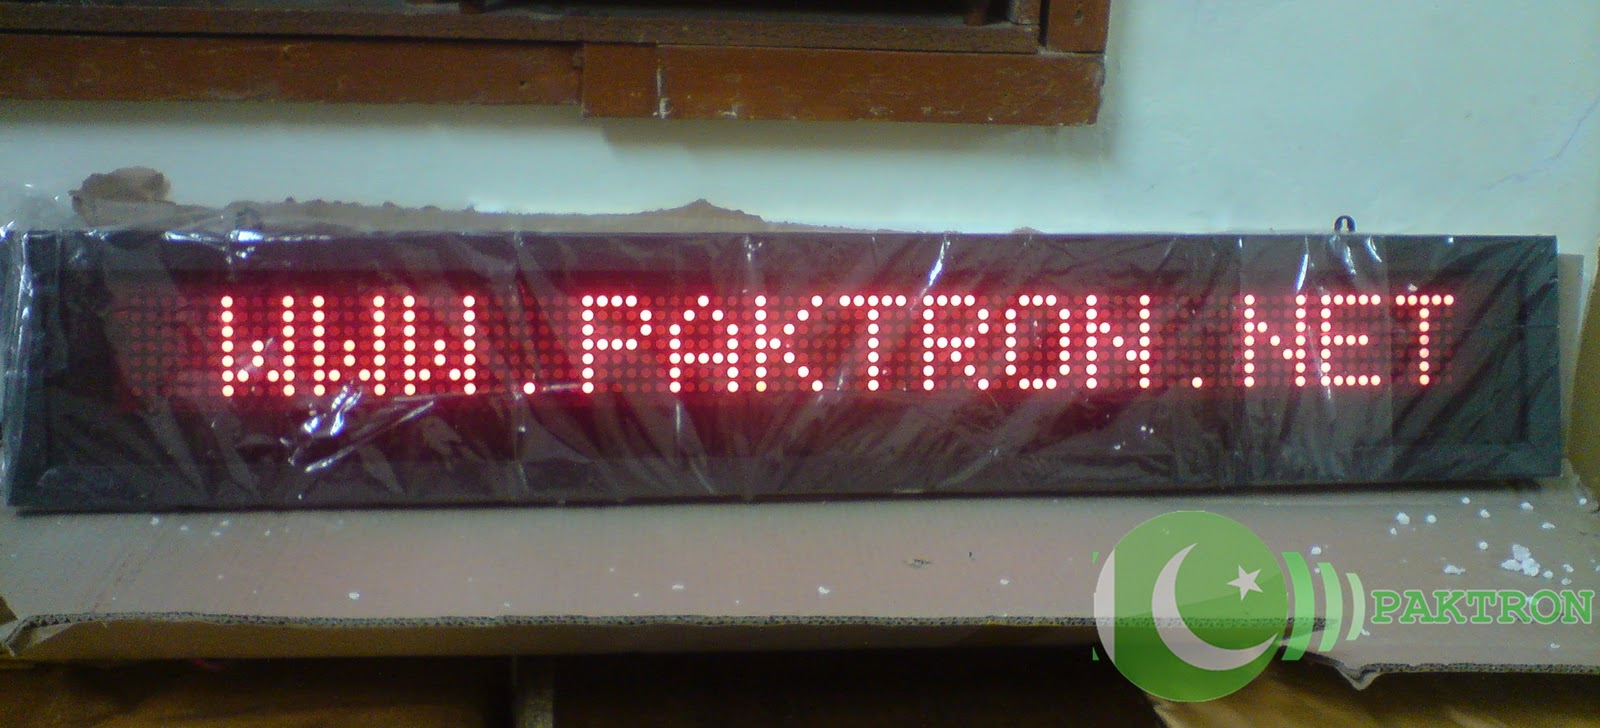 Buy Led Moving Message Display Board In Pakistan Paktron